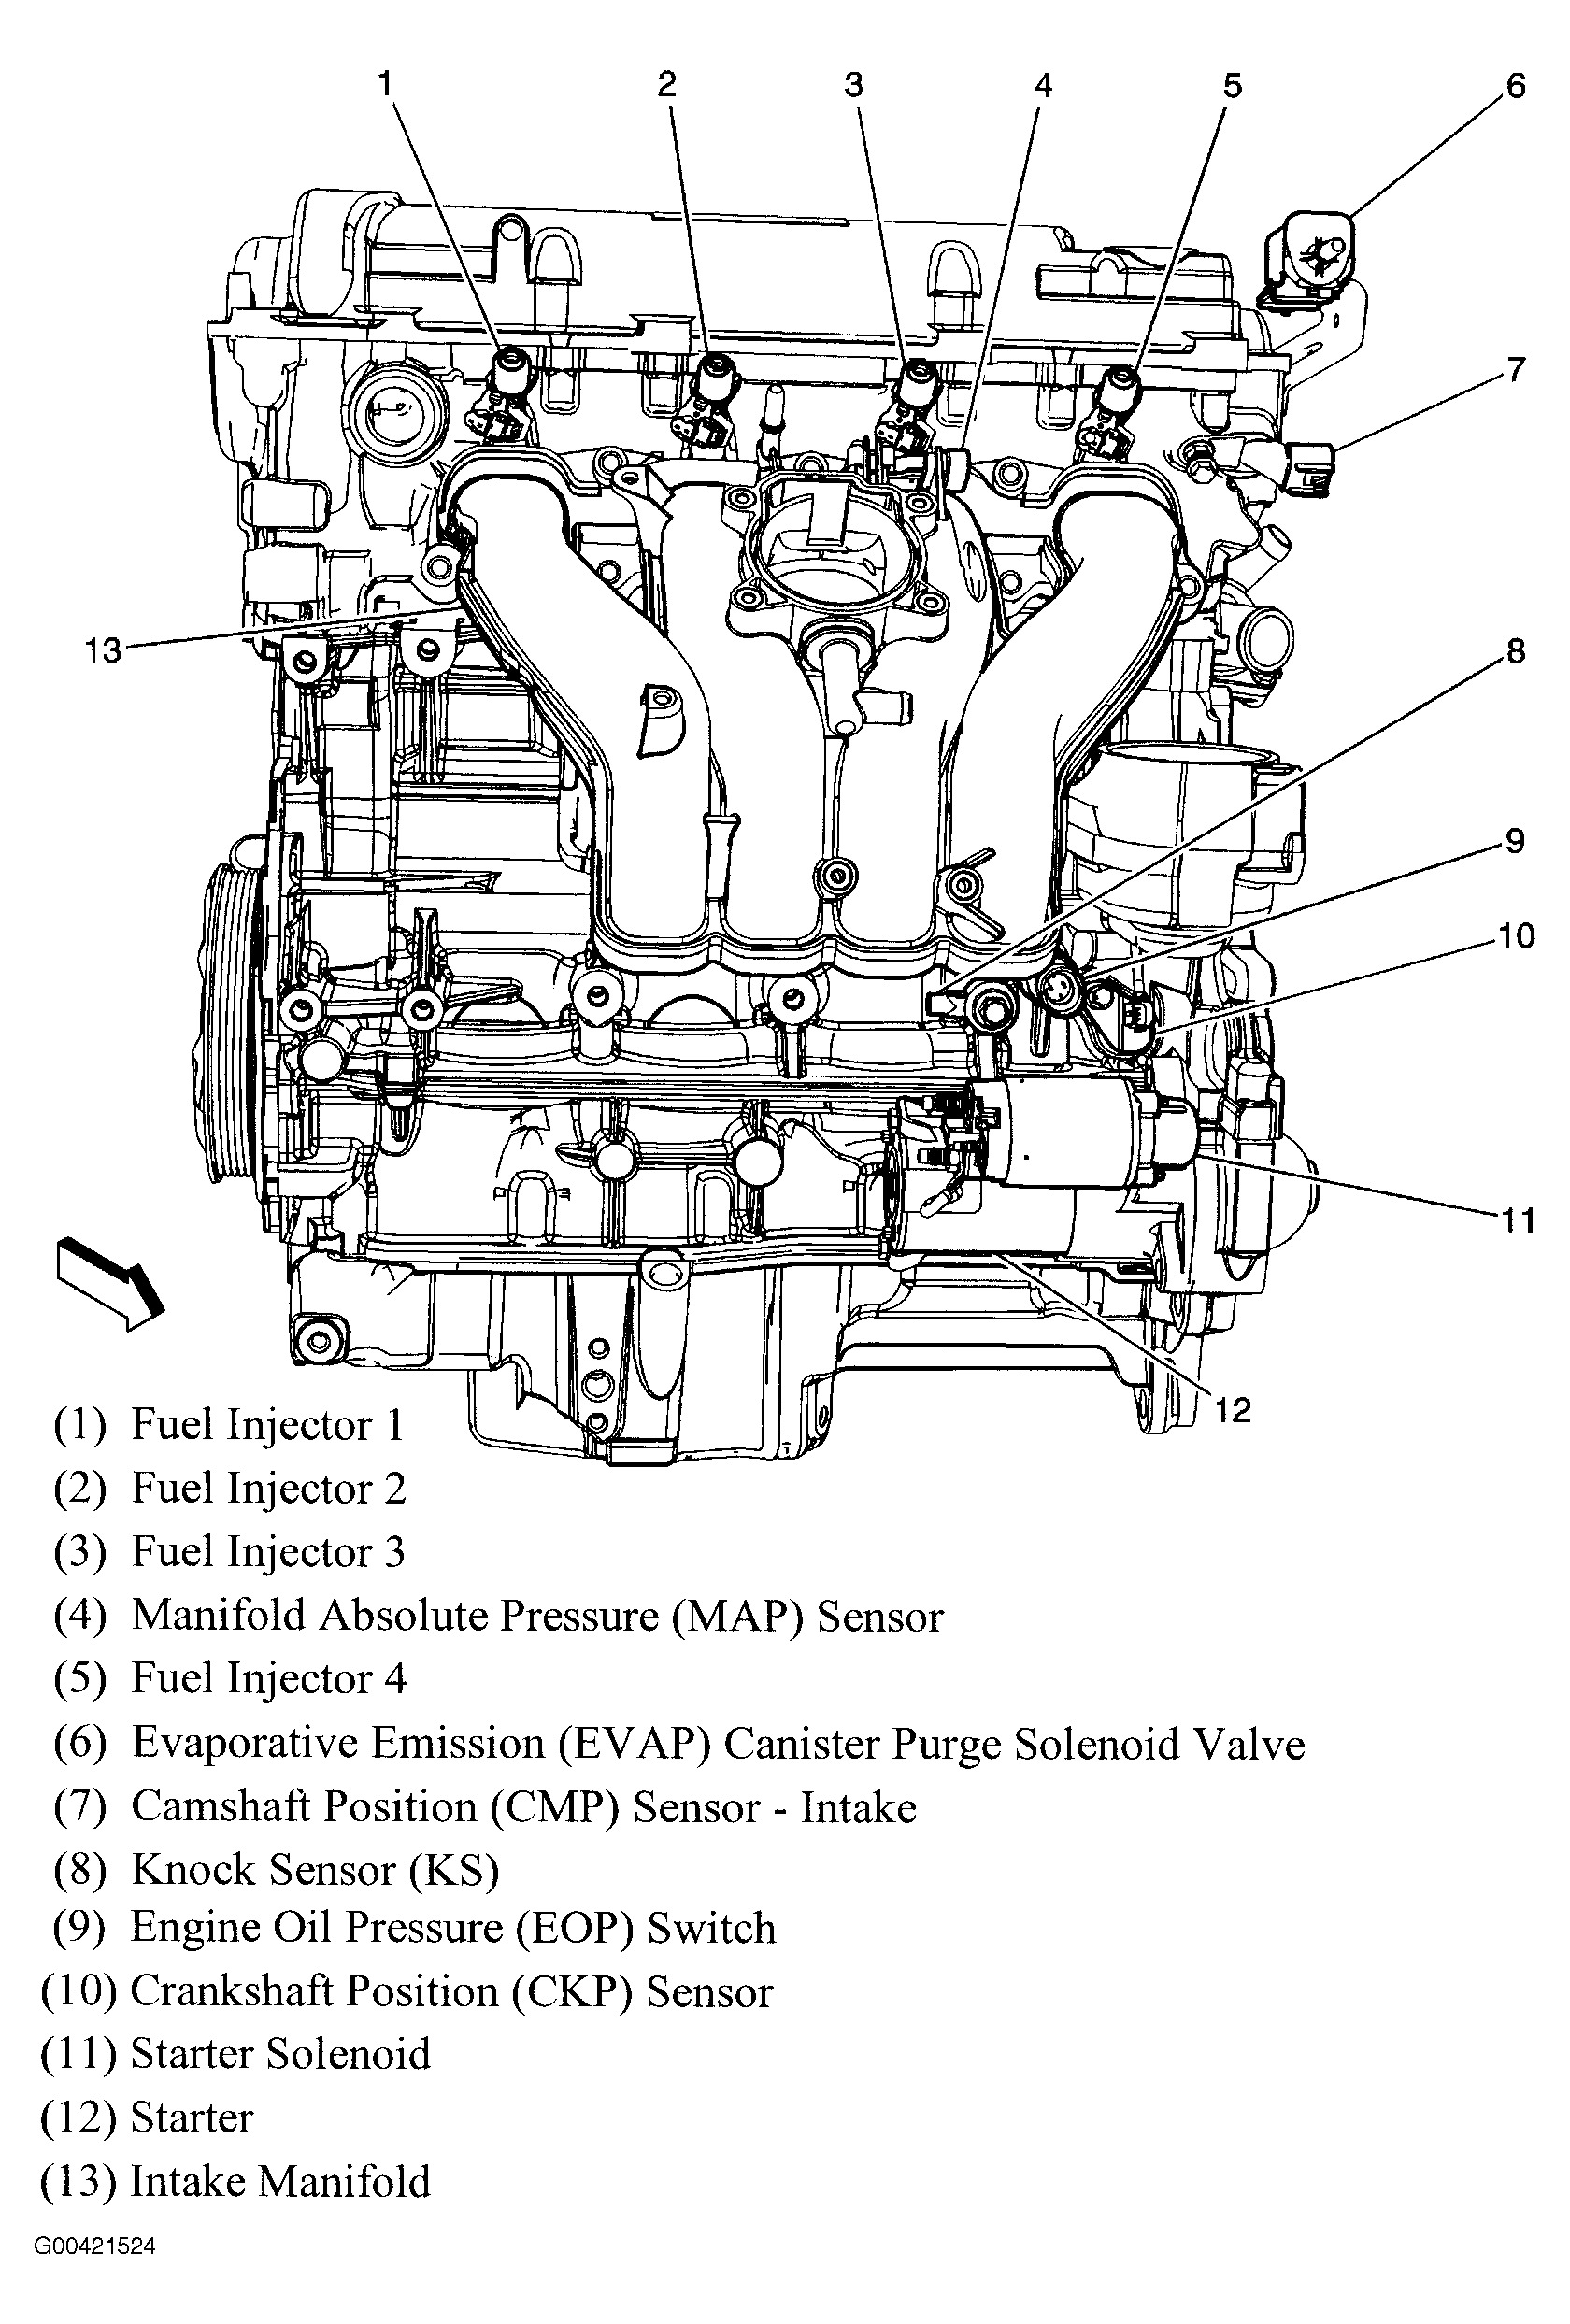 07 pontiac g6 wiring diagram bmw e46 m3 radio camshaft position sensor changed cel won 39t clear page 3